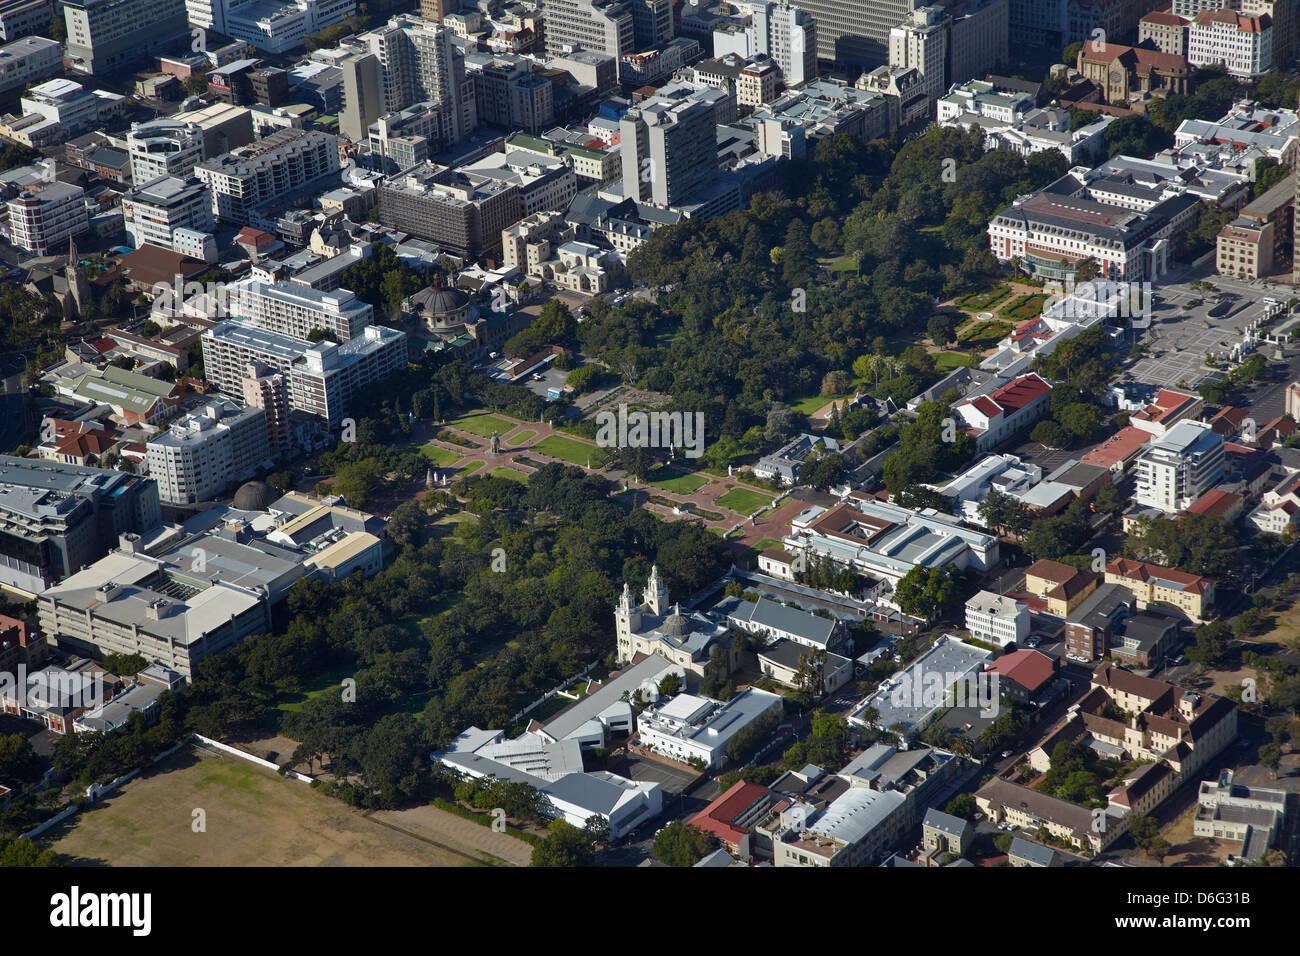 The Company's Garden, Cape Town CBD, South Africa - aerial - Stock Image